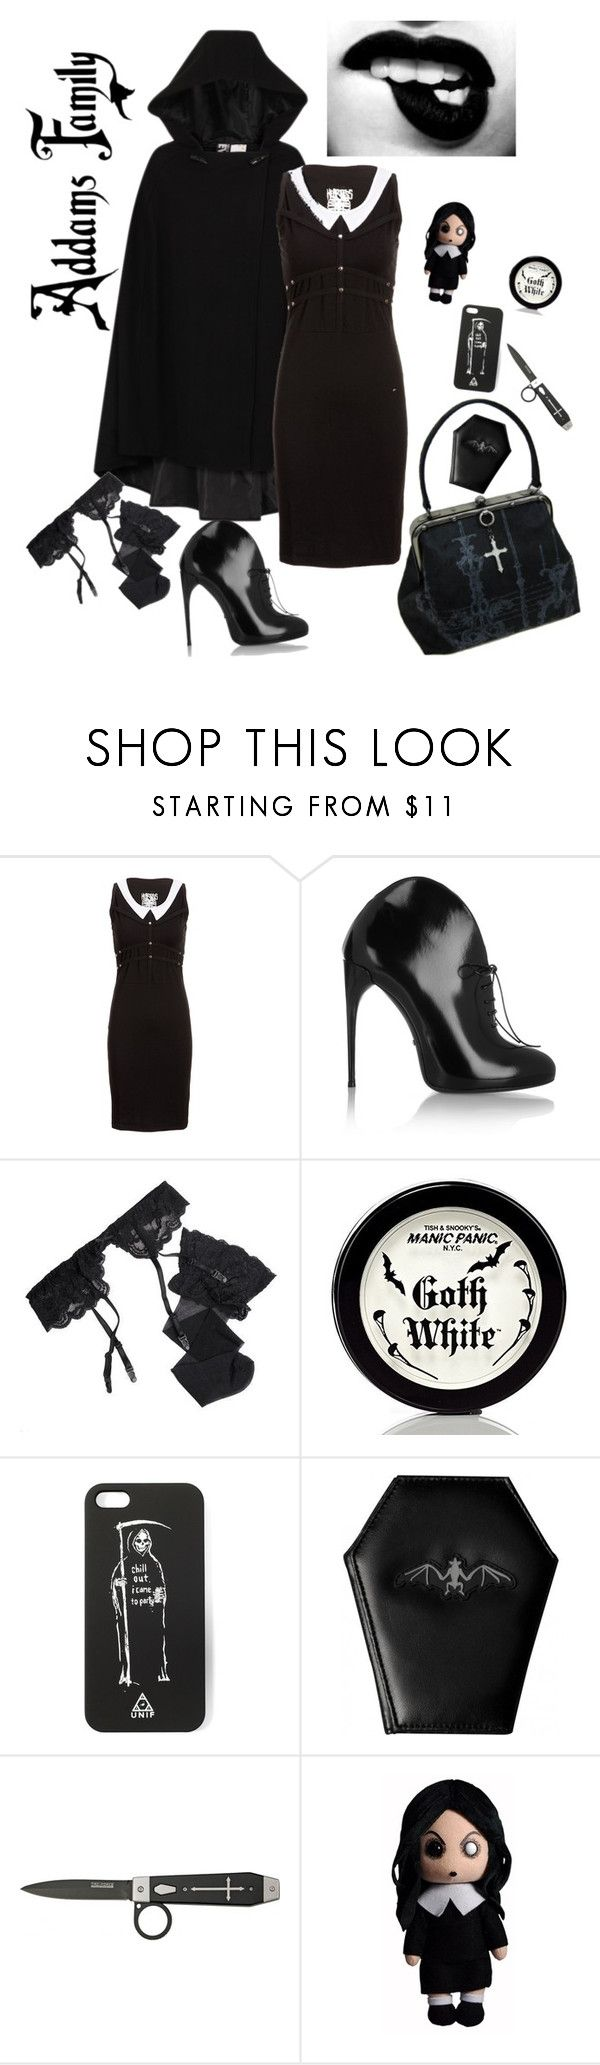 """""""Wednesday 2"""" by tdmonty ❤ liked on Polyvore featuring Gucci, Reger by Janet Reger and Manic Panic NYC"""